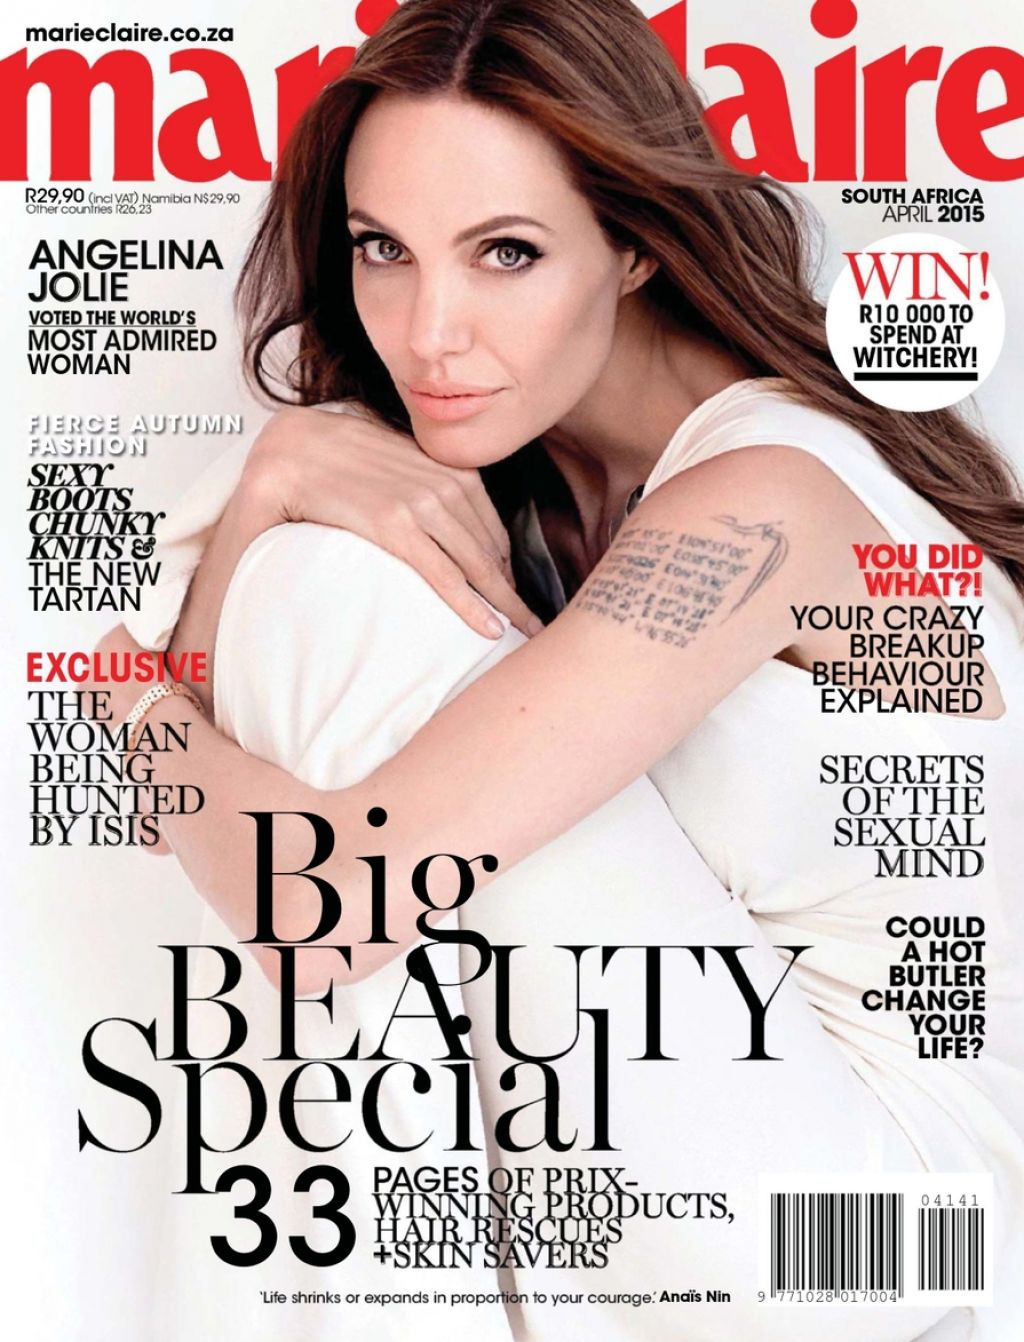 Angelina Jolie - Marie Claire Magazine (Africa) April 2015 Issue